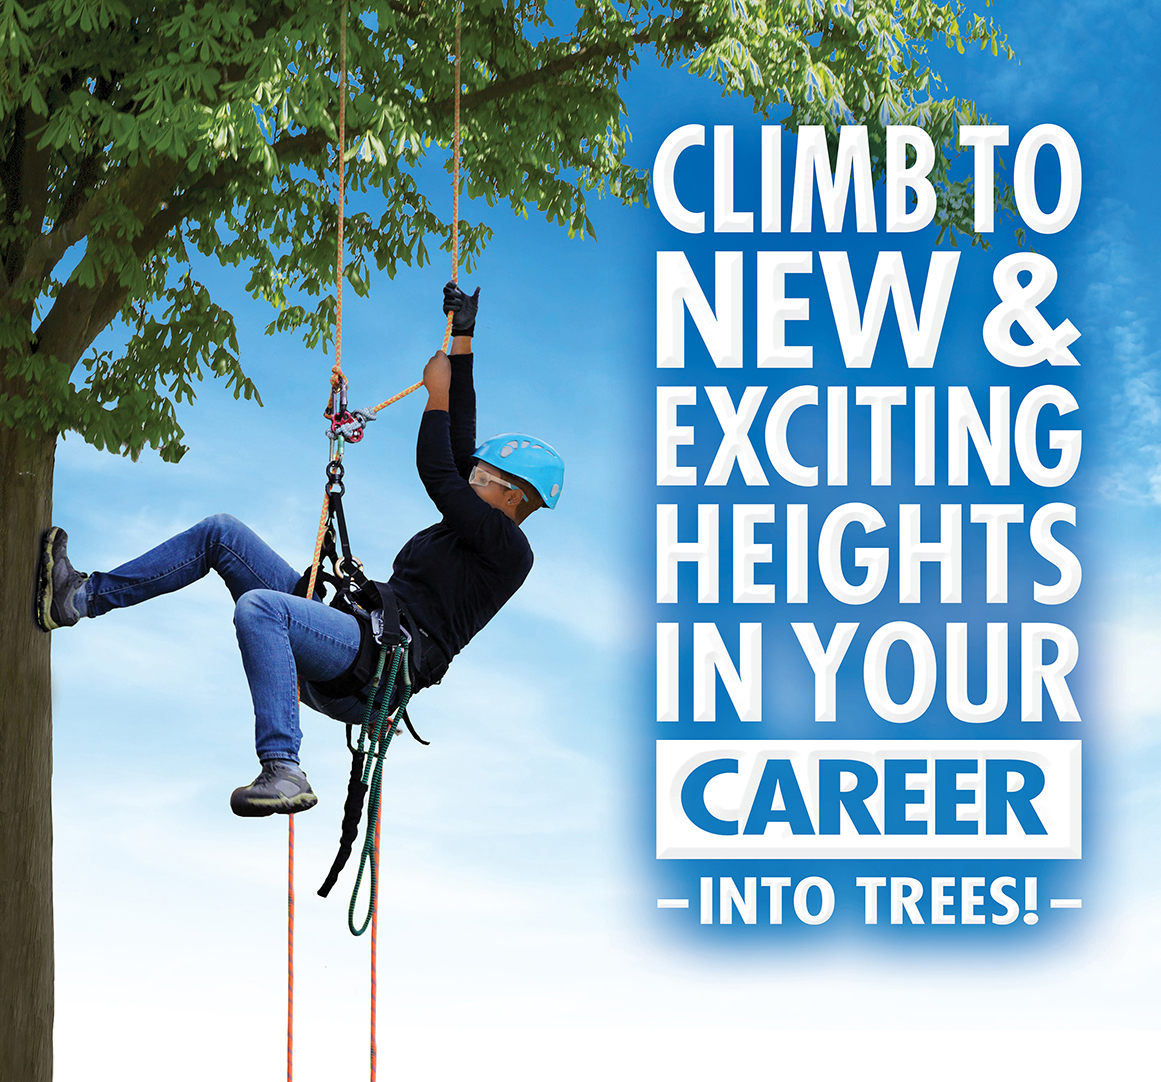 Green Jobs - Knowledge of Tree Care Career and Education